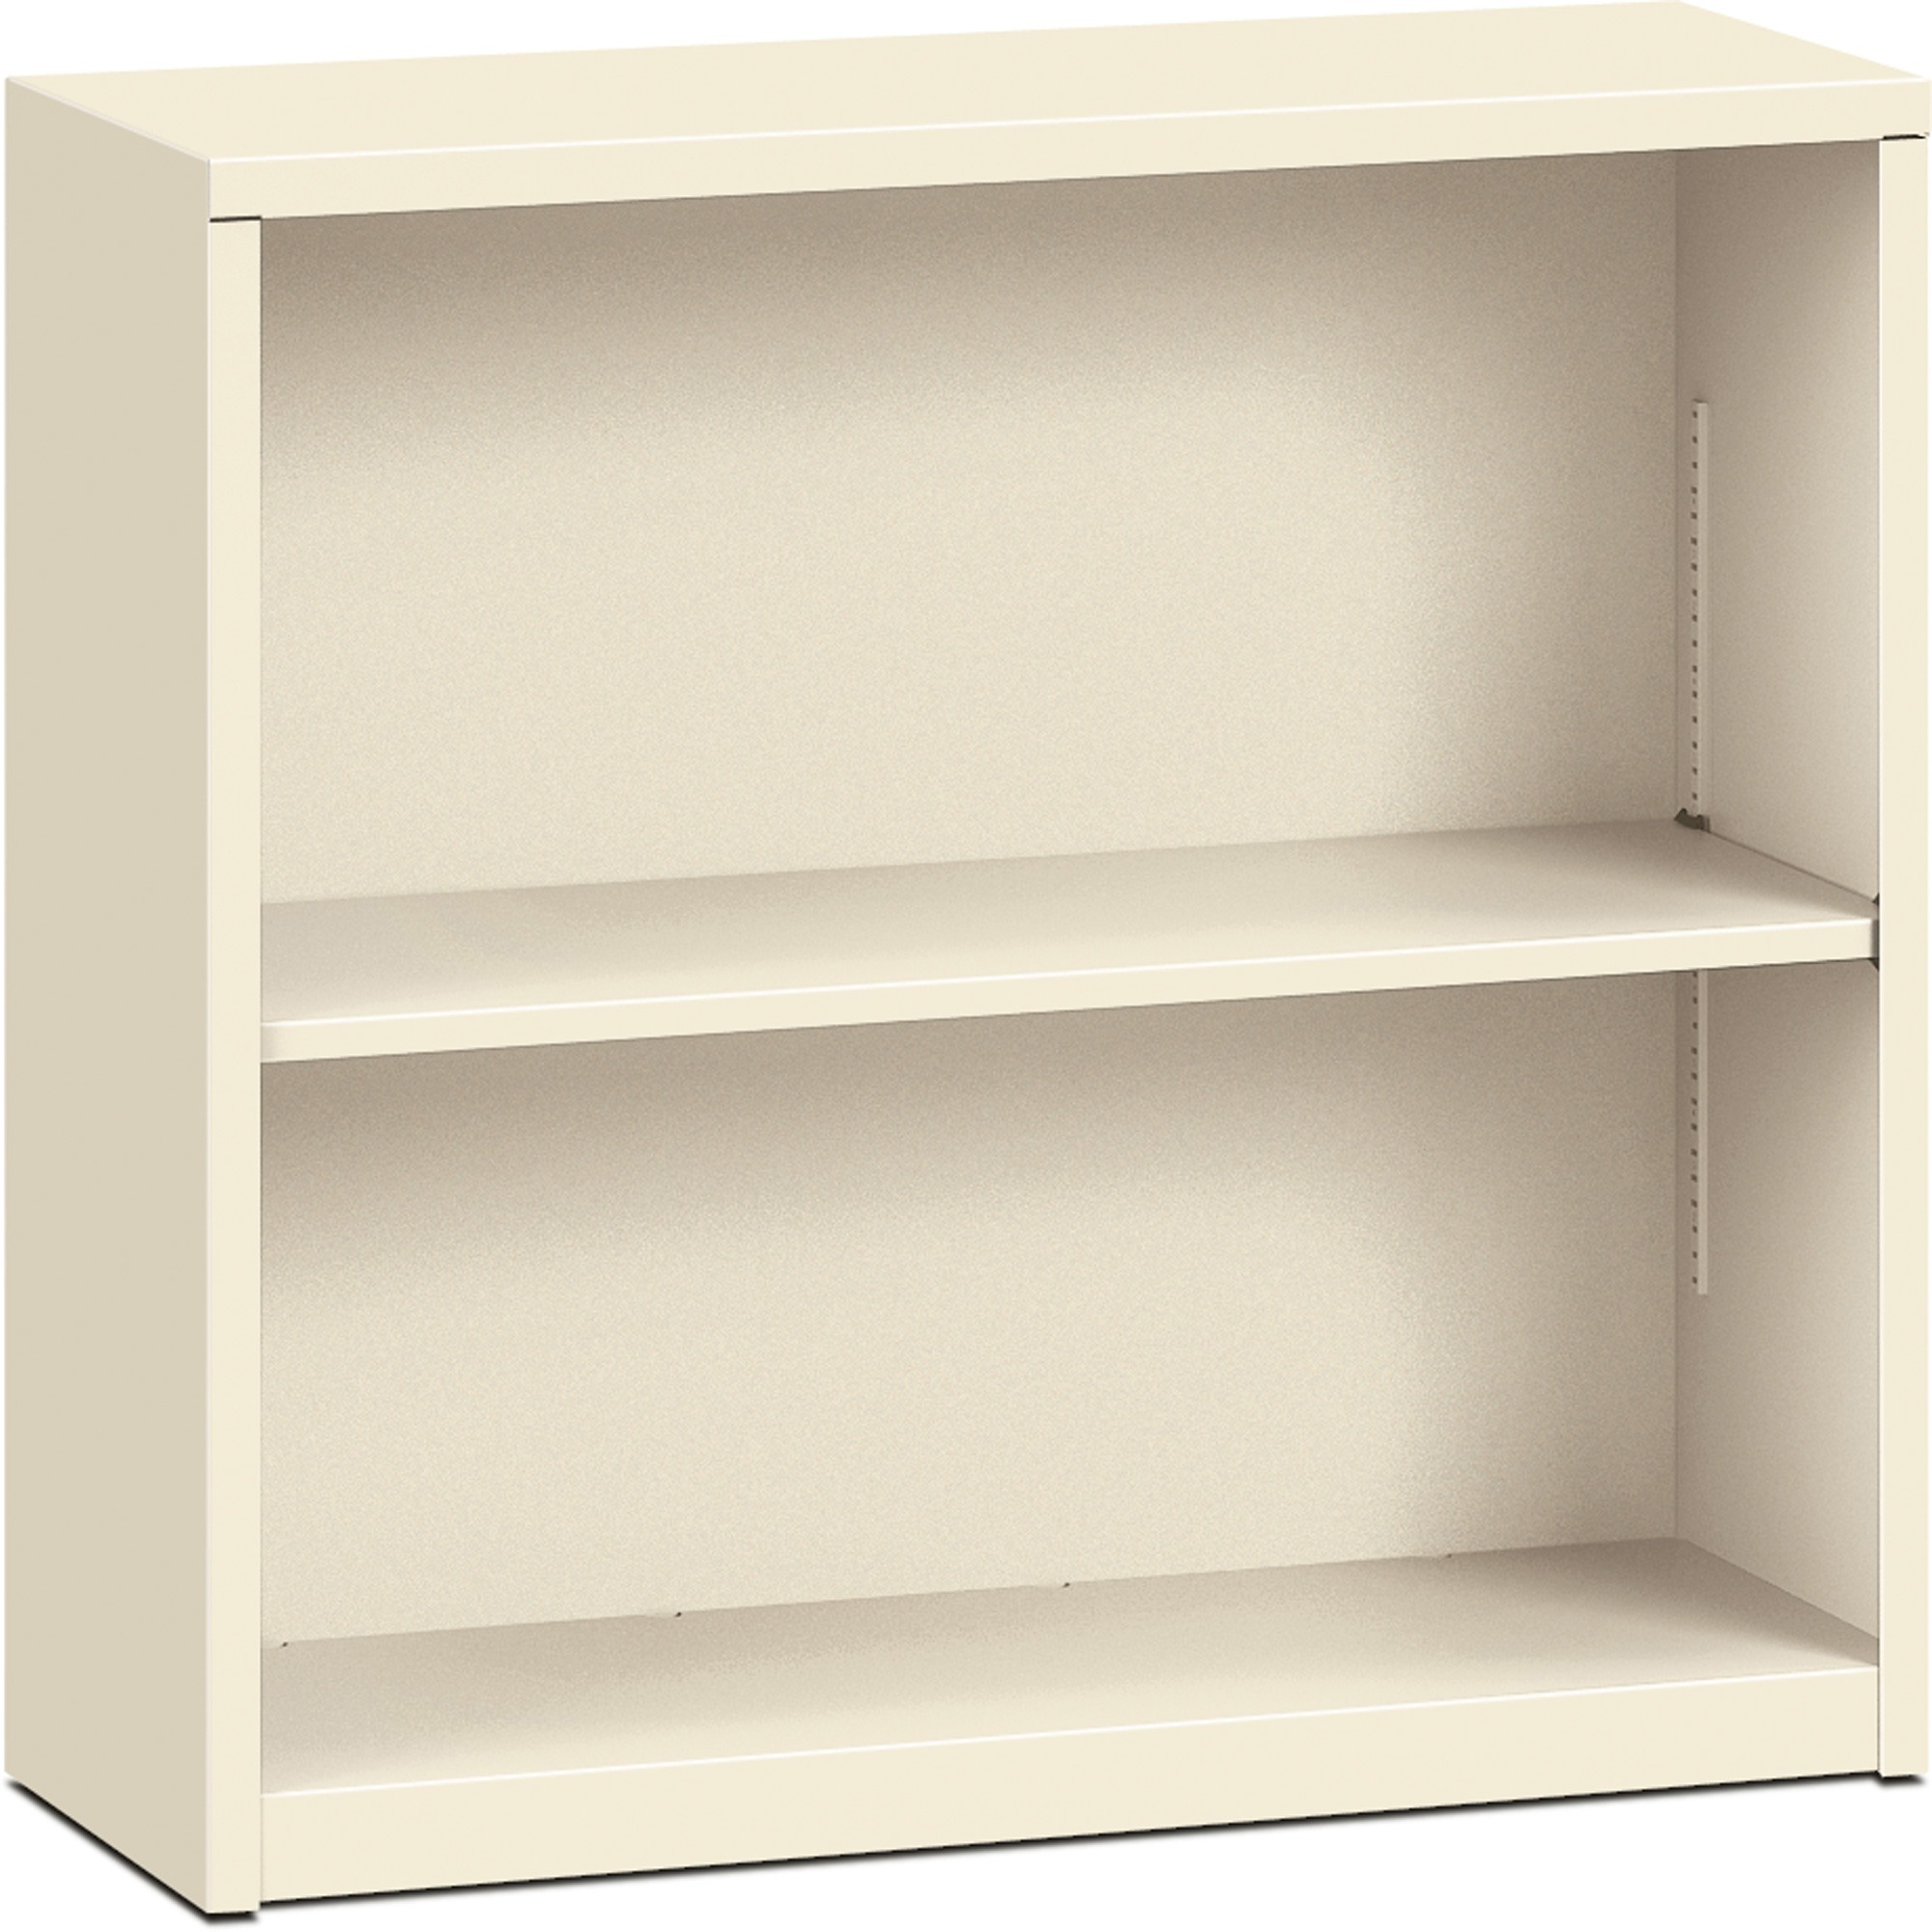 shelf white bookcases home two best modern amazing beautiful bookcase on room in decor design tips great